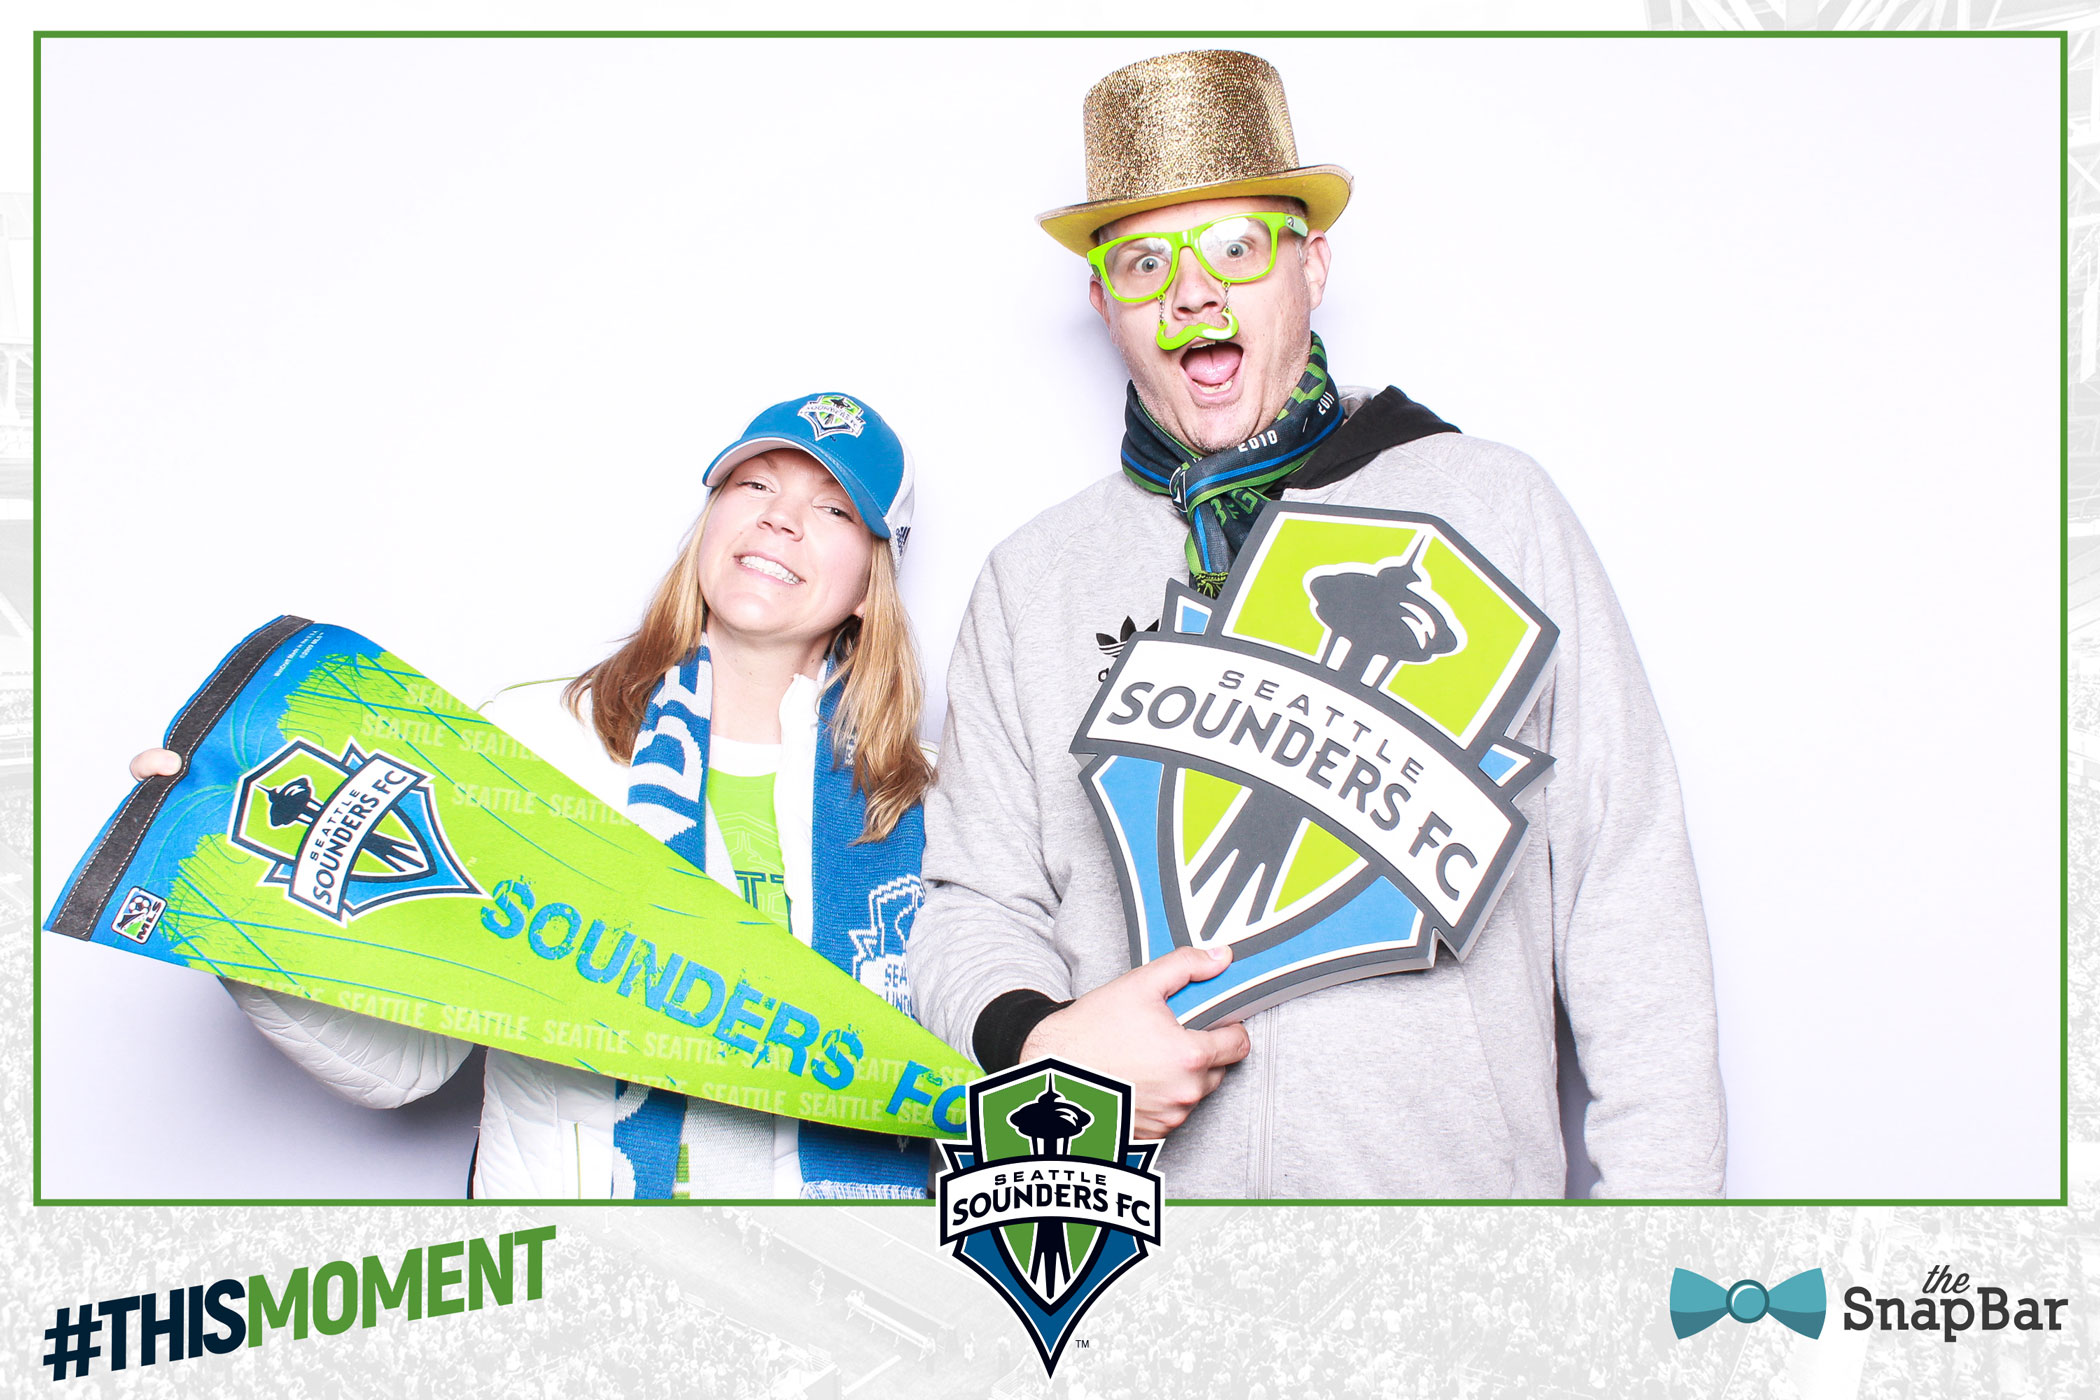 Sounders FC Photo Booth